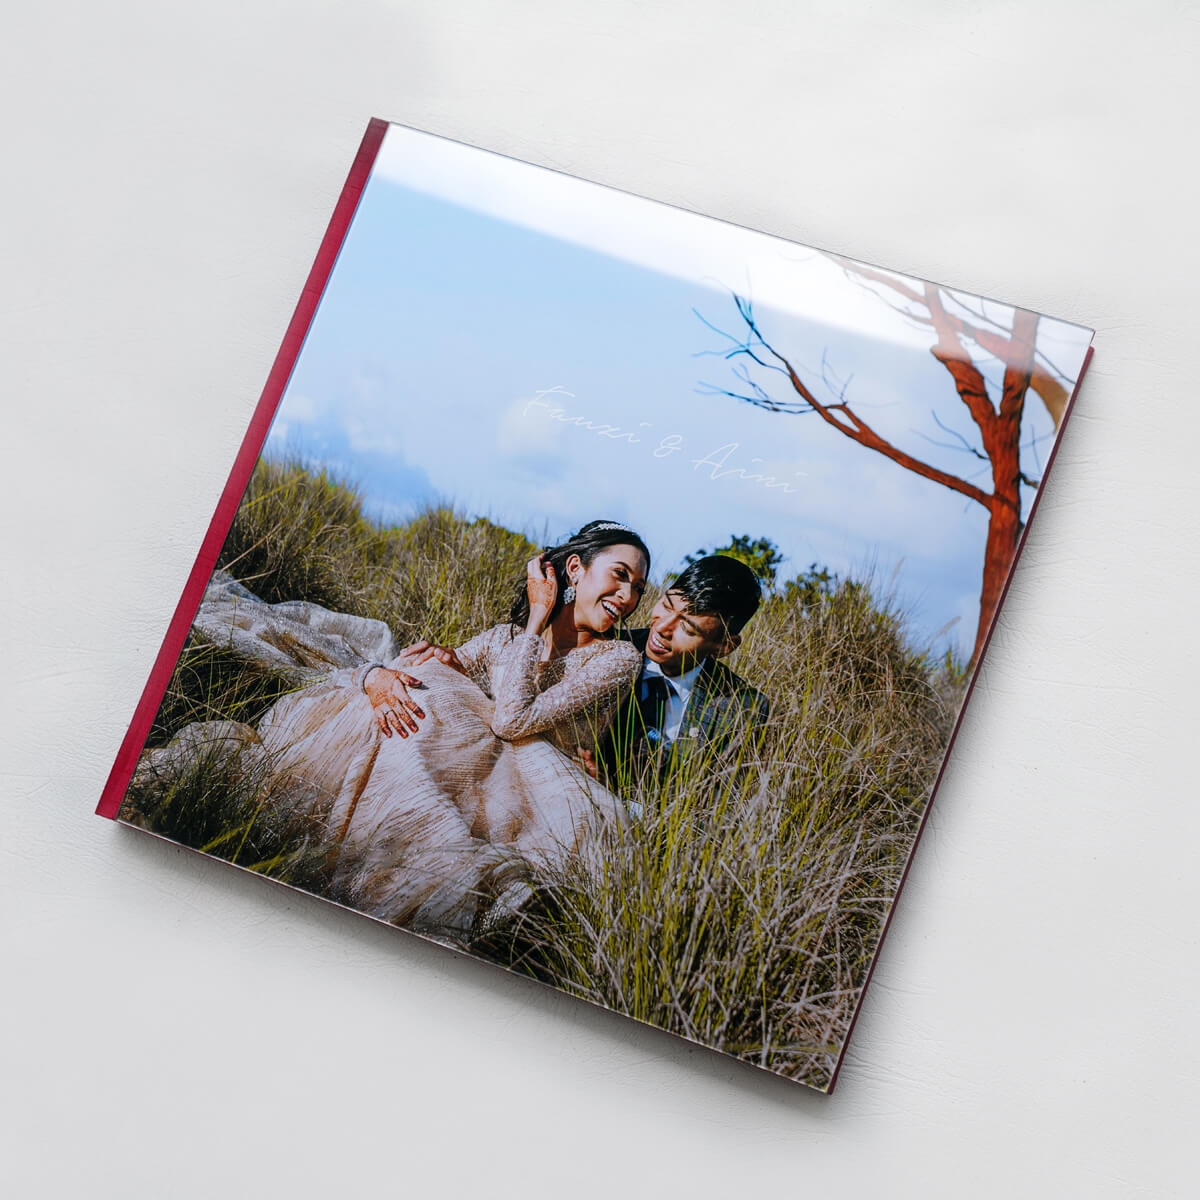 GW MDuo STD Photo Book 8x8s